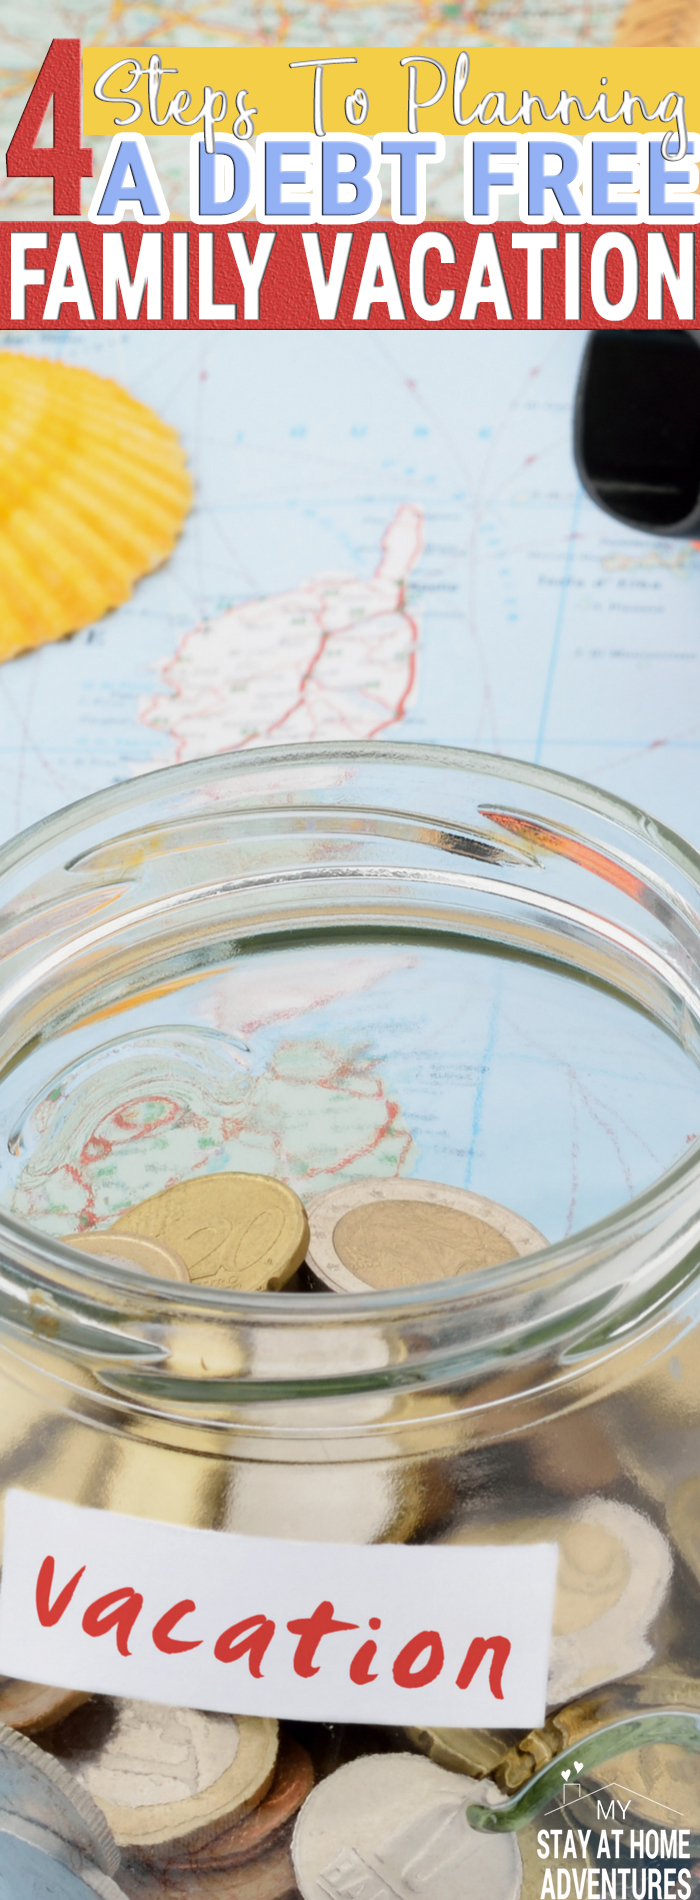 Want to plan a debt free family vacation this year? Start with these four steps to help you plan and achieve your debt free vacation you and your family are going to love. Eliminate vacation debt with these four steps.